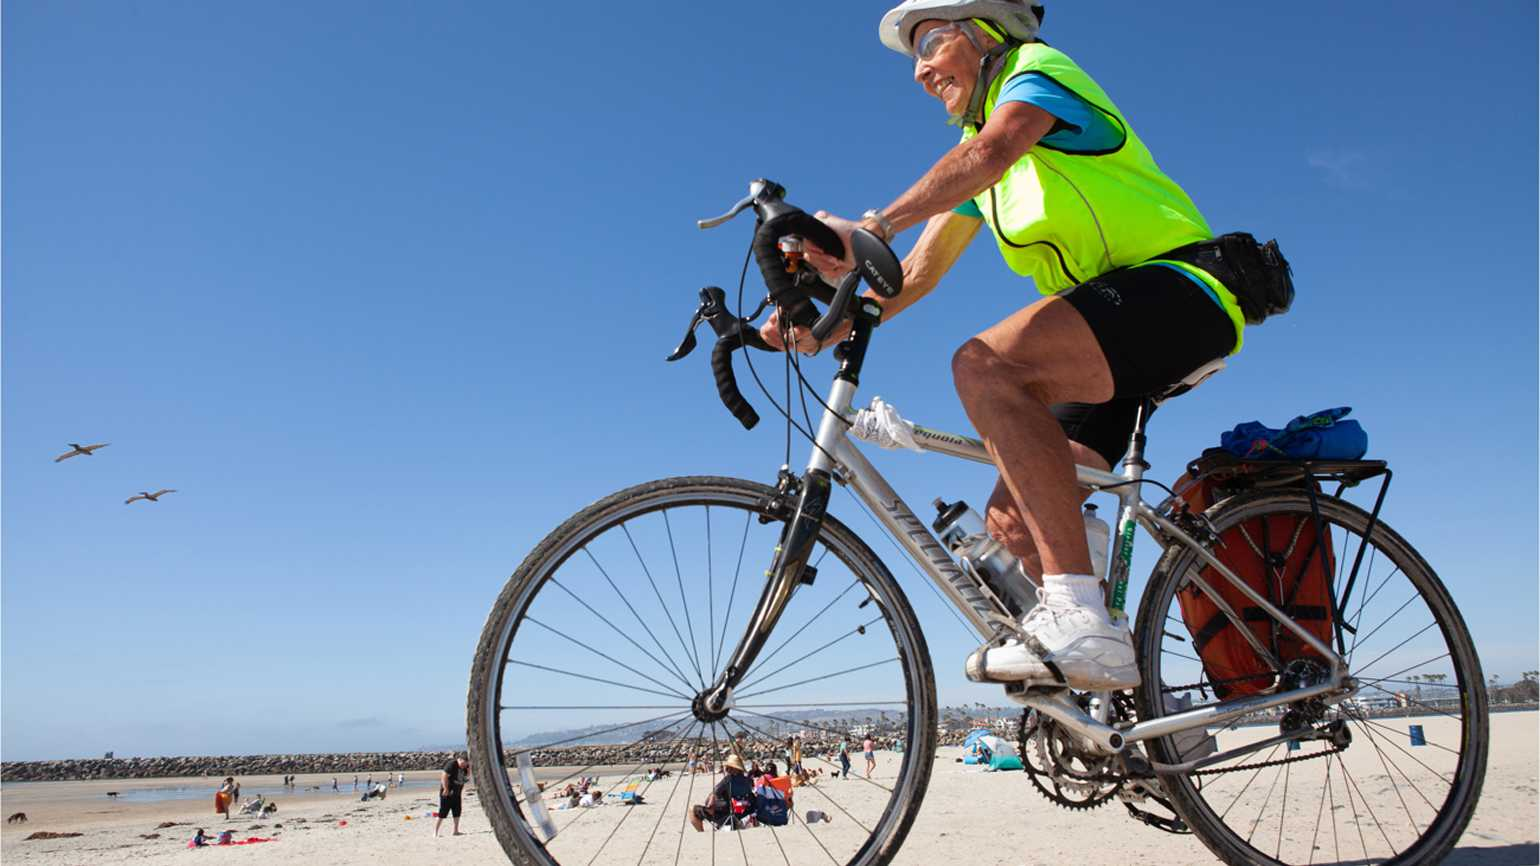 Carol Garsee riding her bike on Dog Beach in San Diego, California.